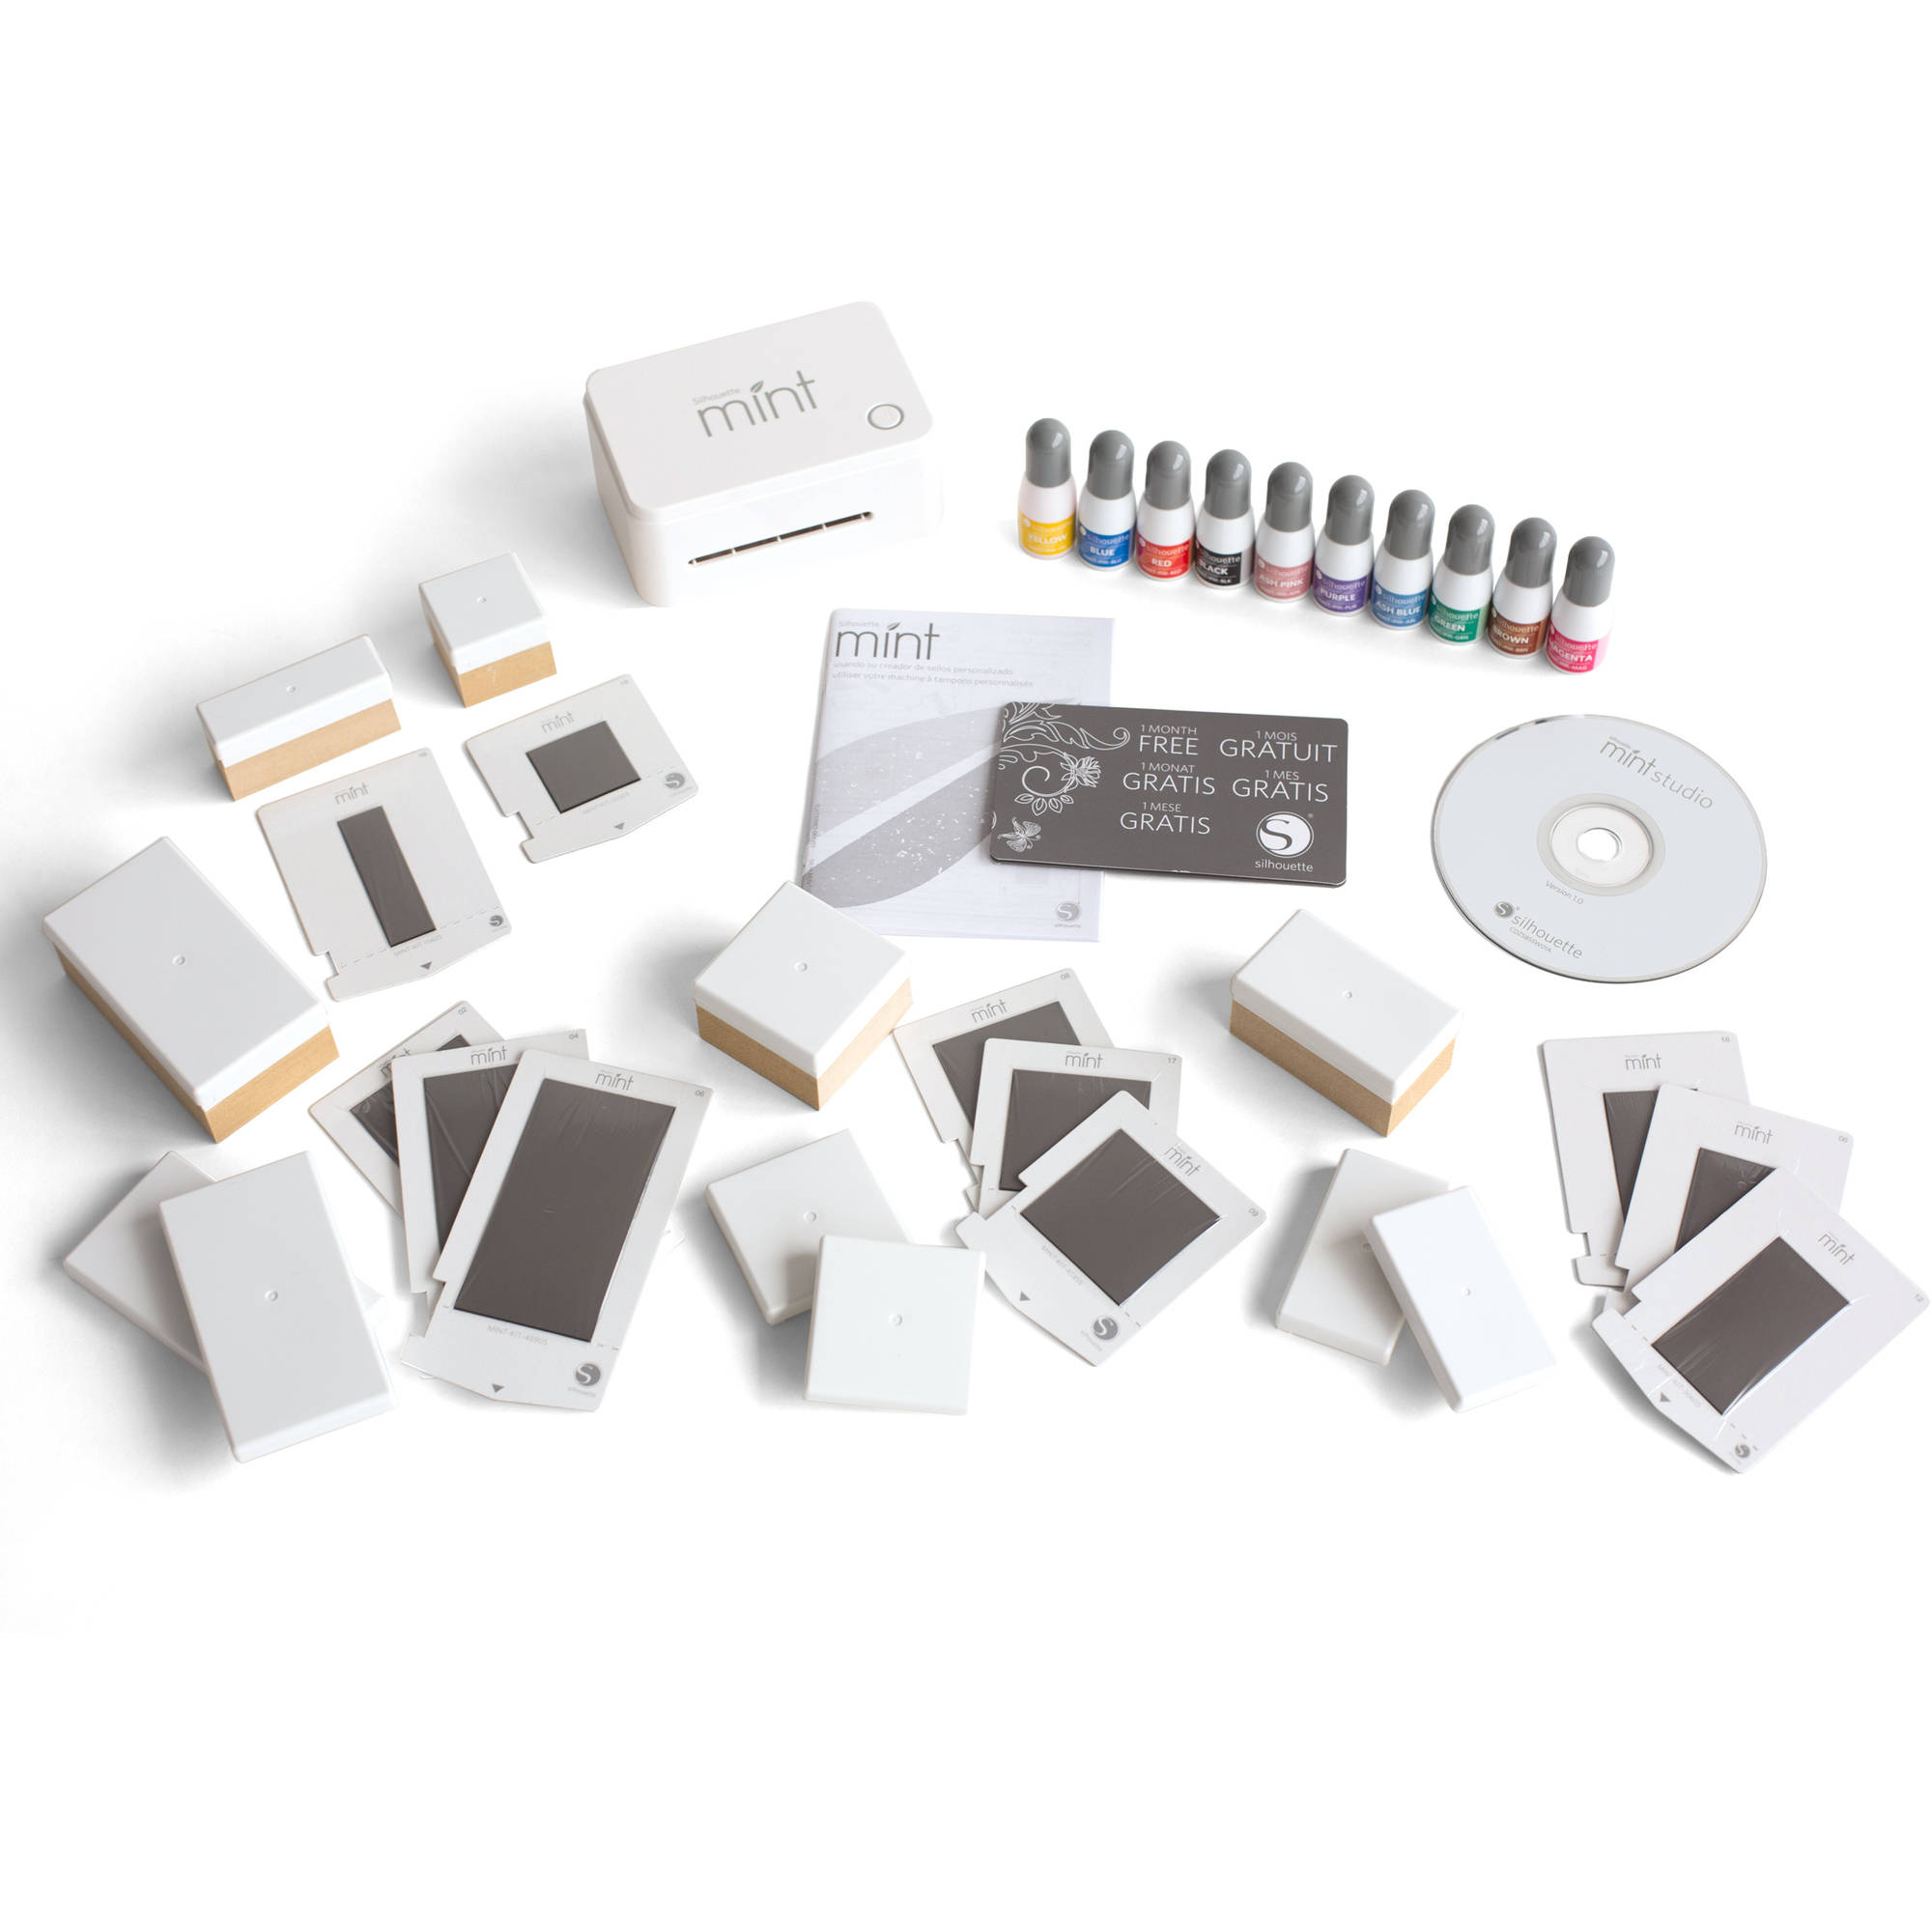 Silhouette Mint Custom Stamp Making Machine and Accessories Value Bundle